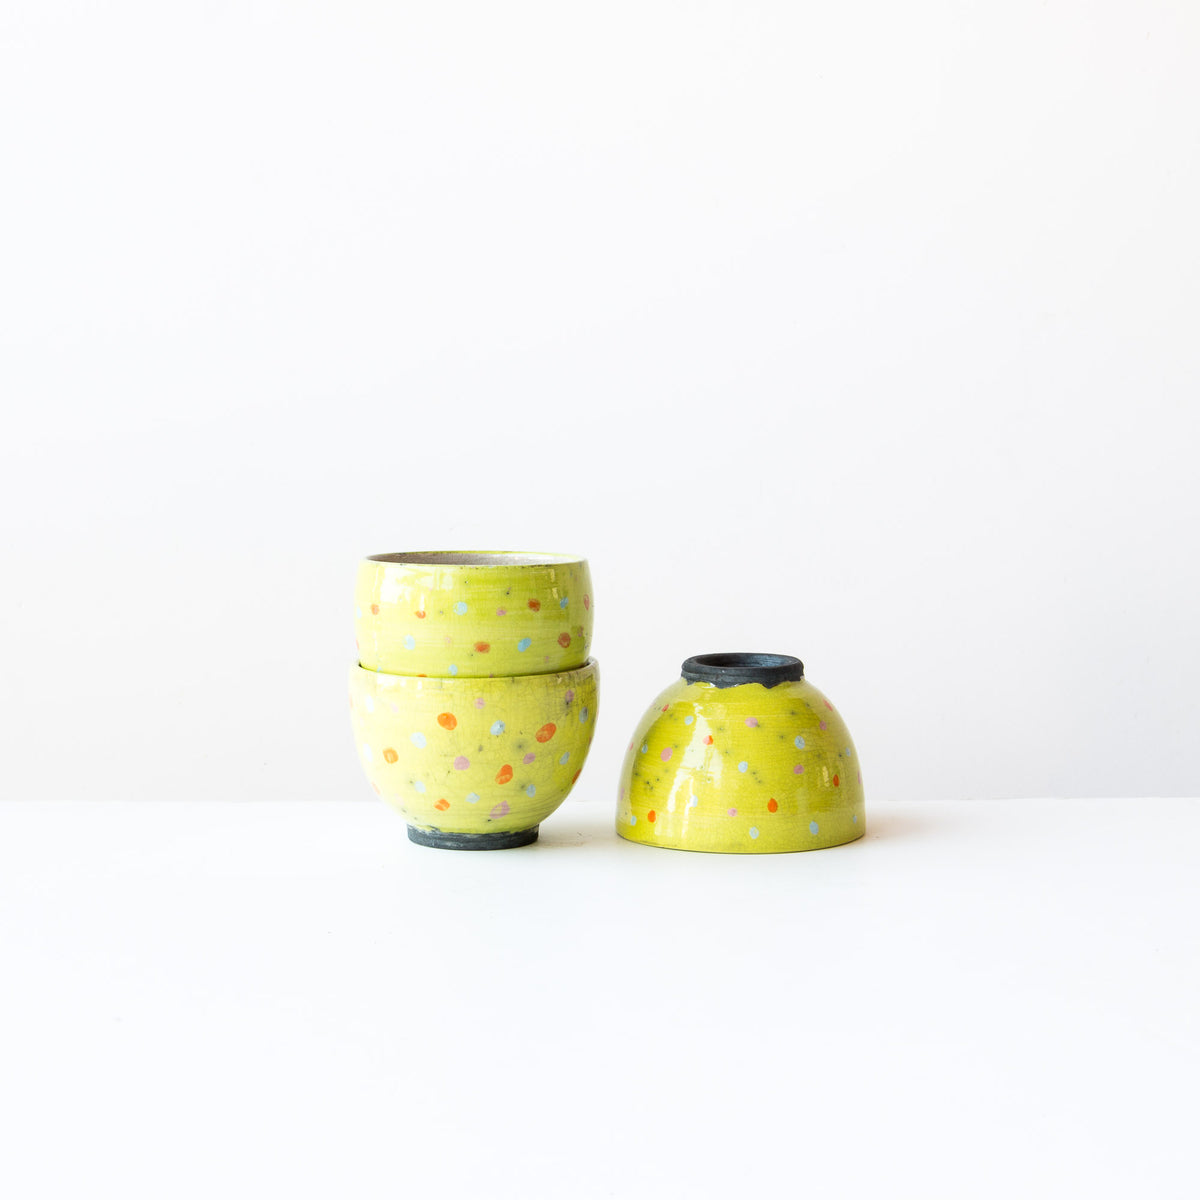 Lime Handmade Raku Tea Bowls with Dots - Sold by Chic & Basta